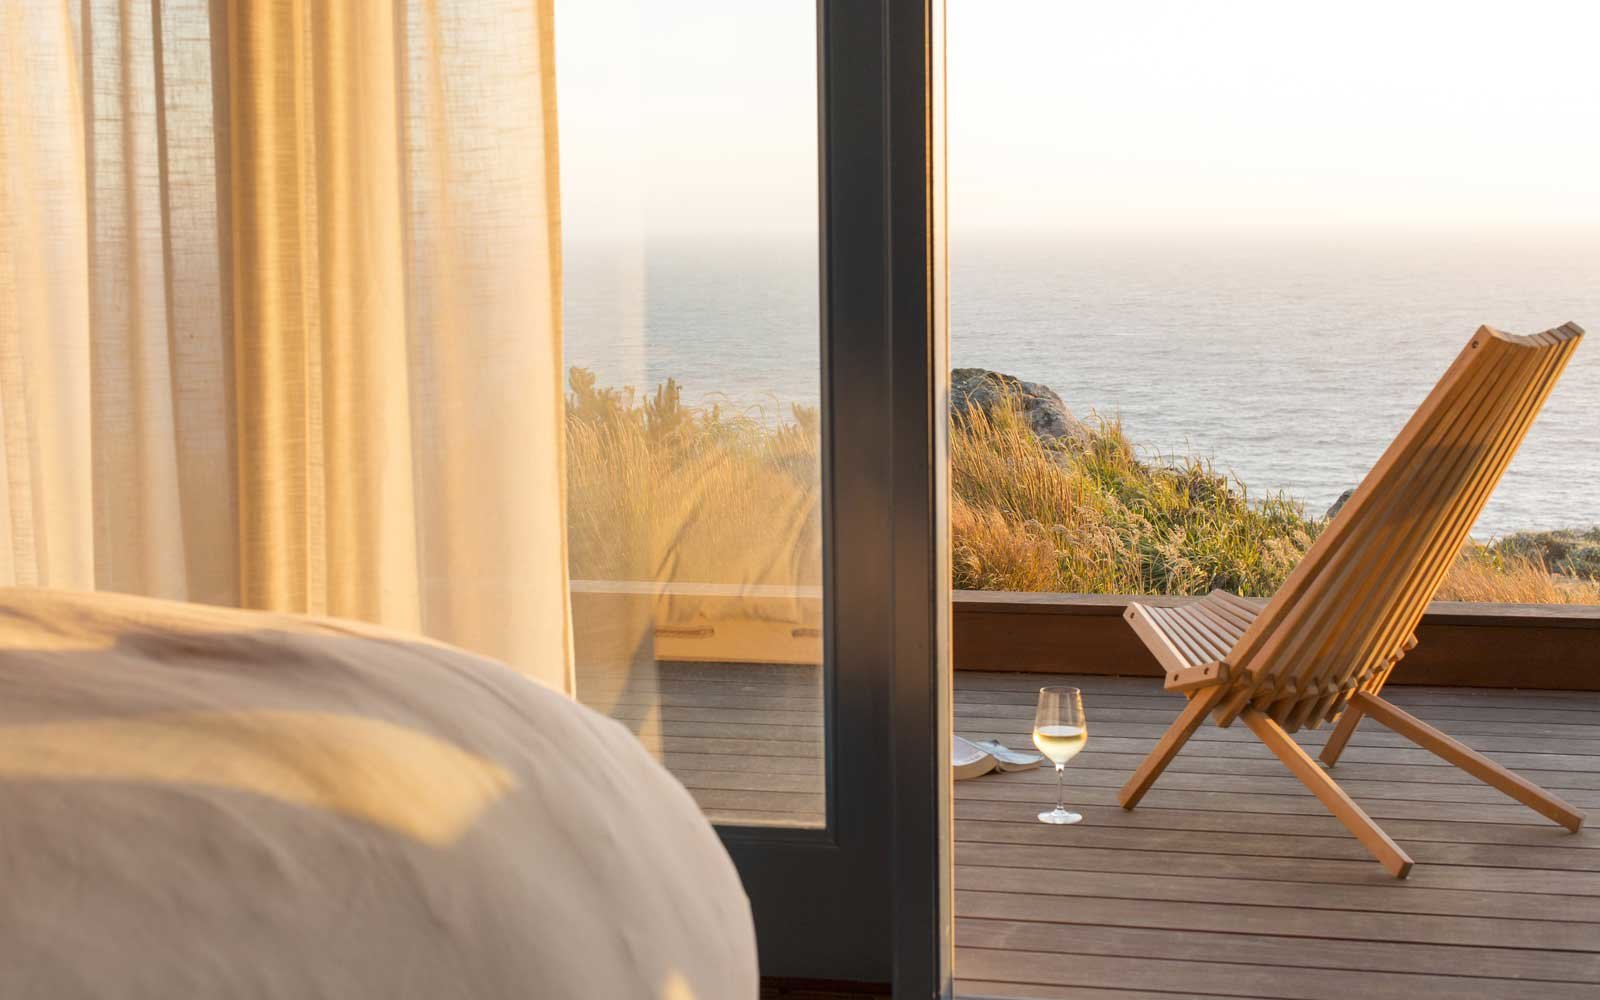 Top Romantic Hotels: Timber Cove Resort, California